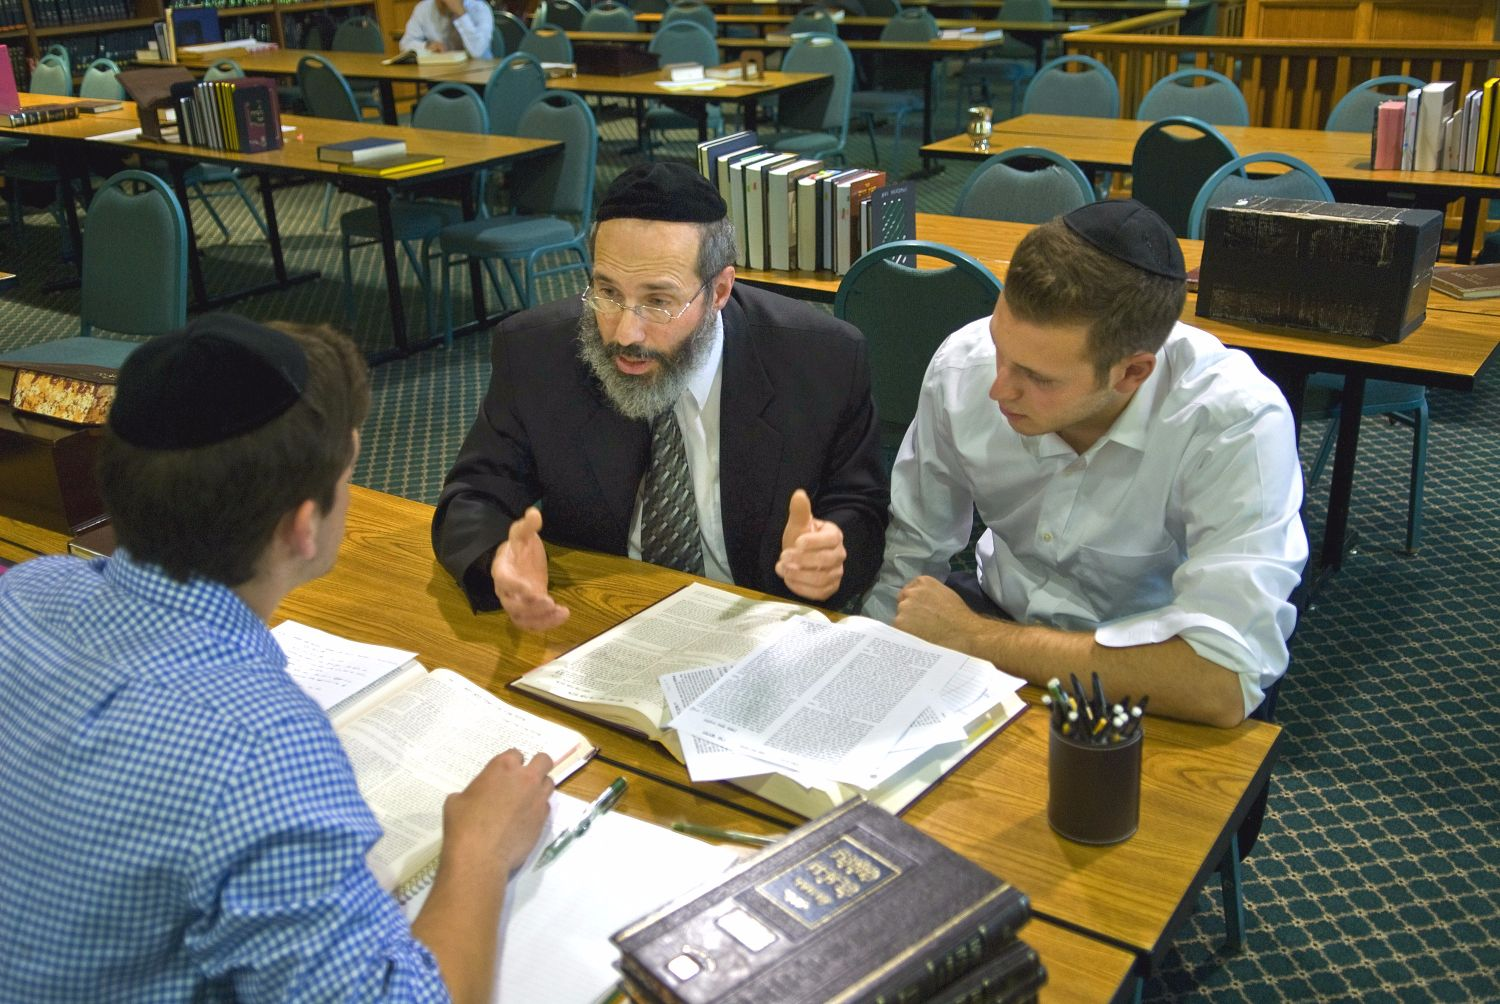 Rabbi sitting with two students